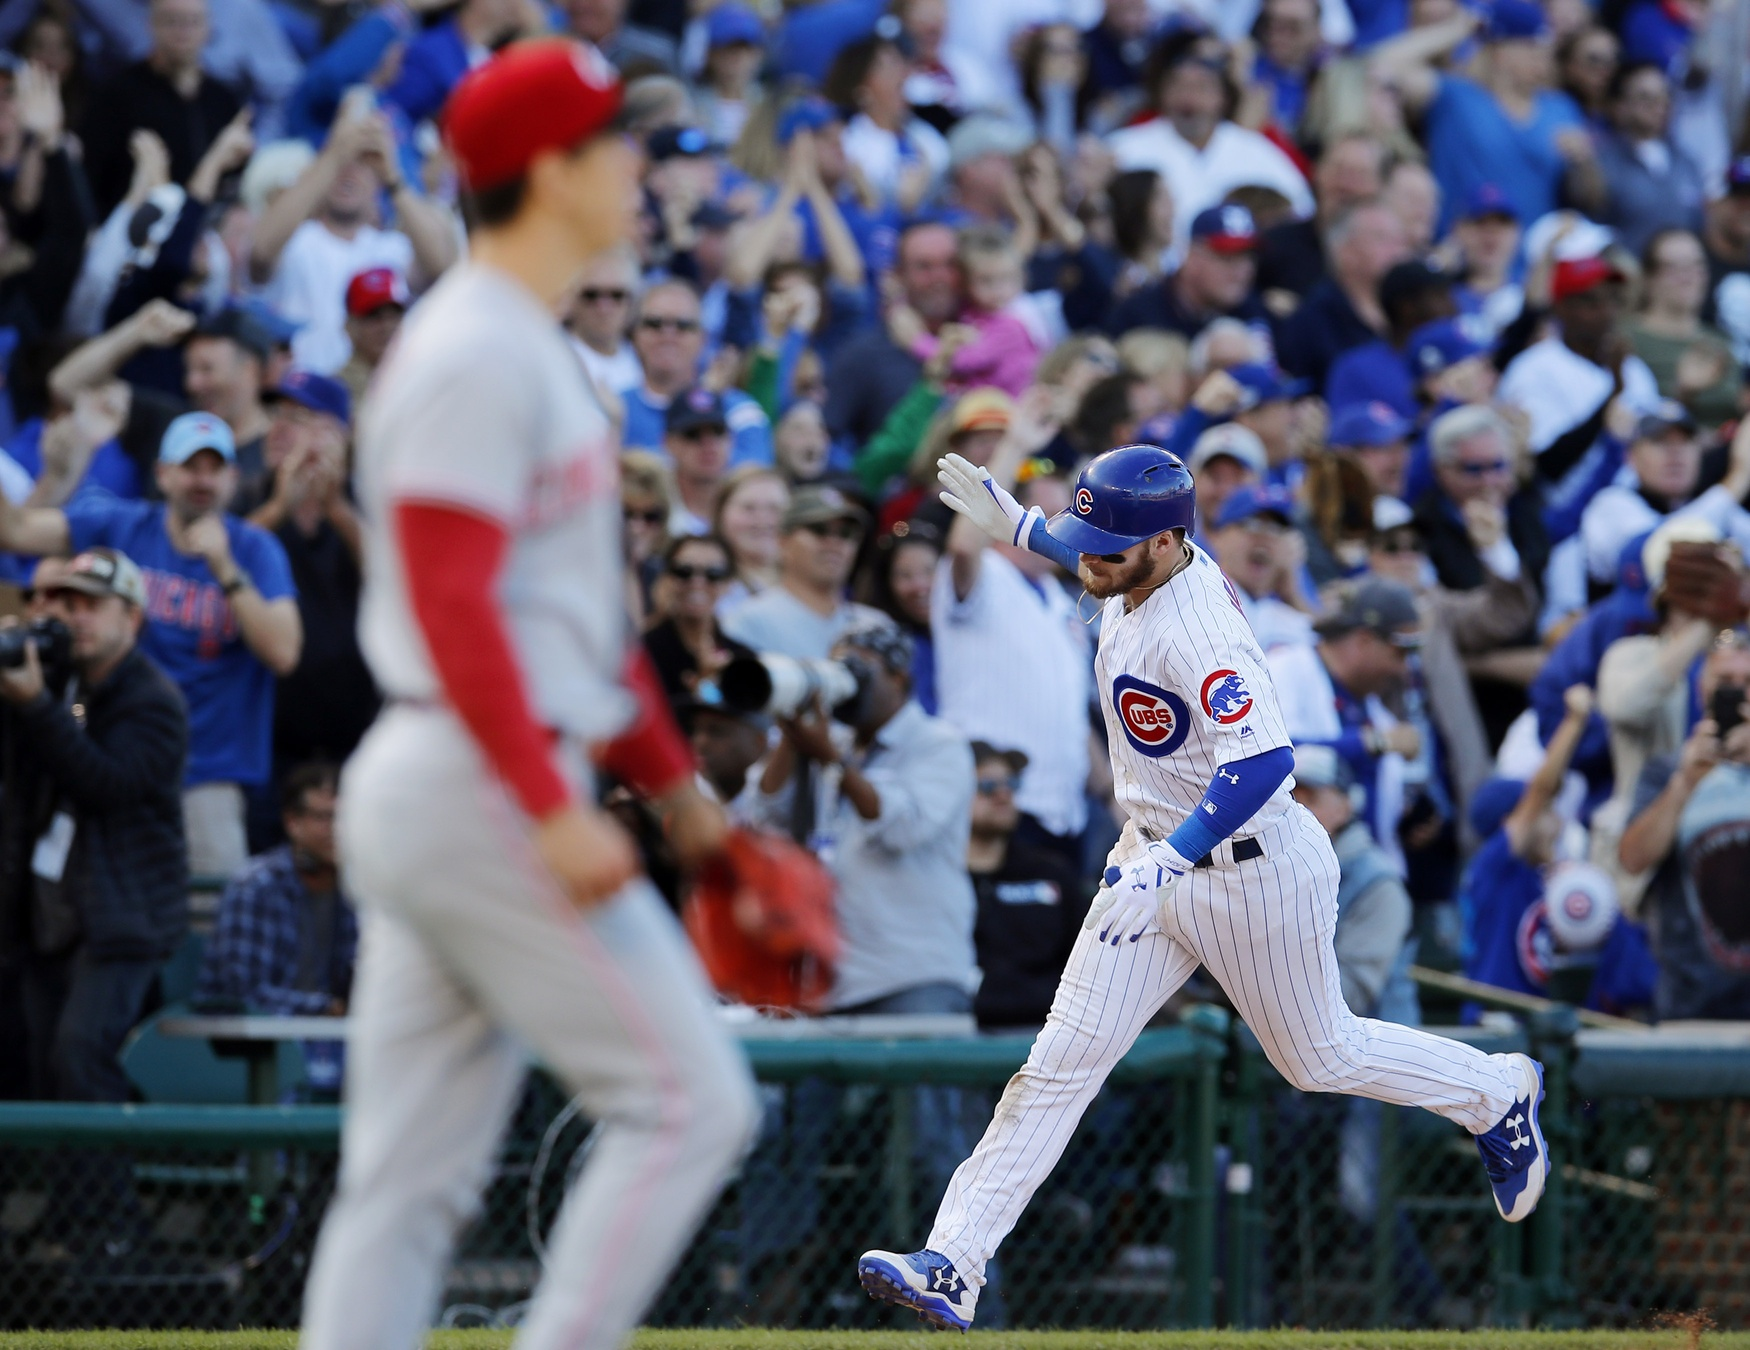 Kyle Schwarber's home run gives Cubs 2-0 lead